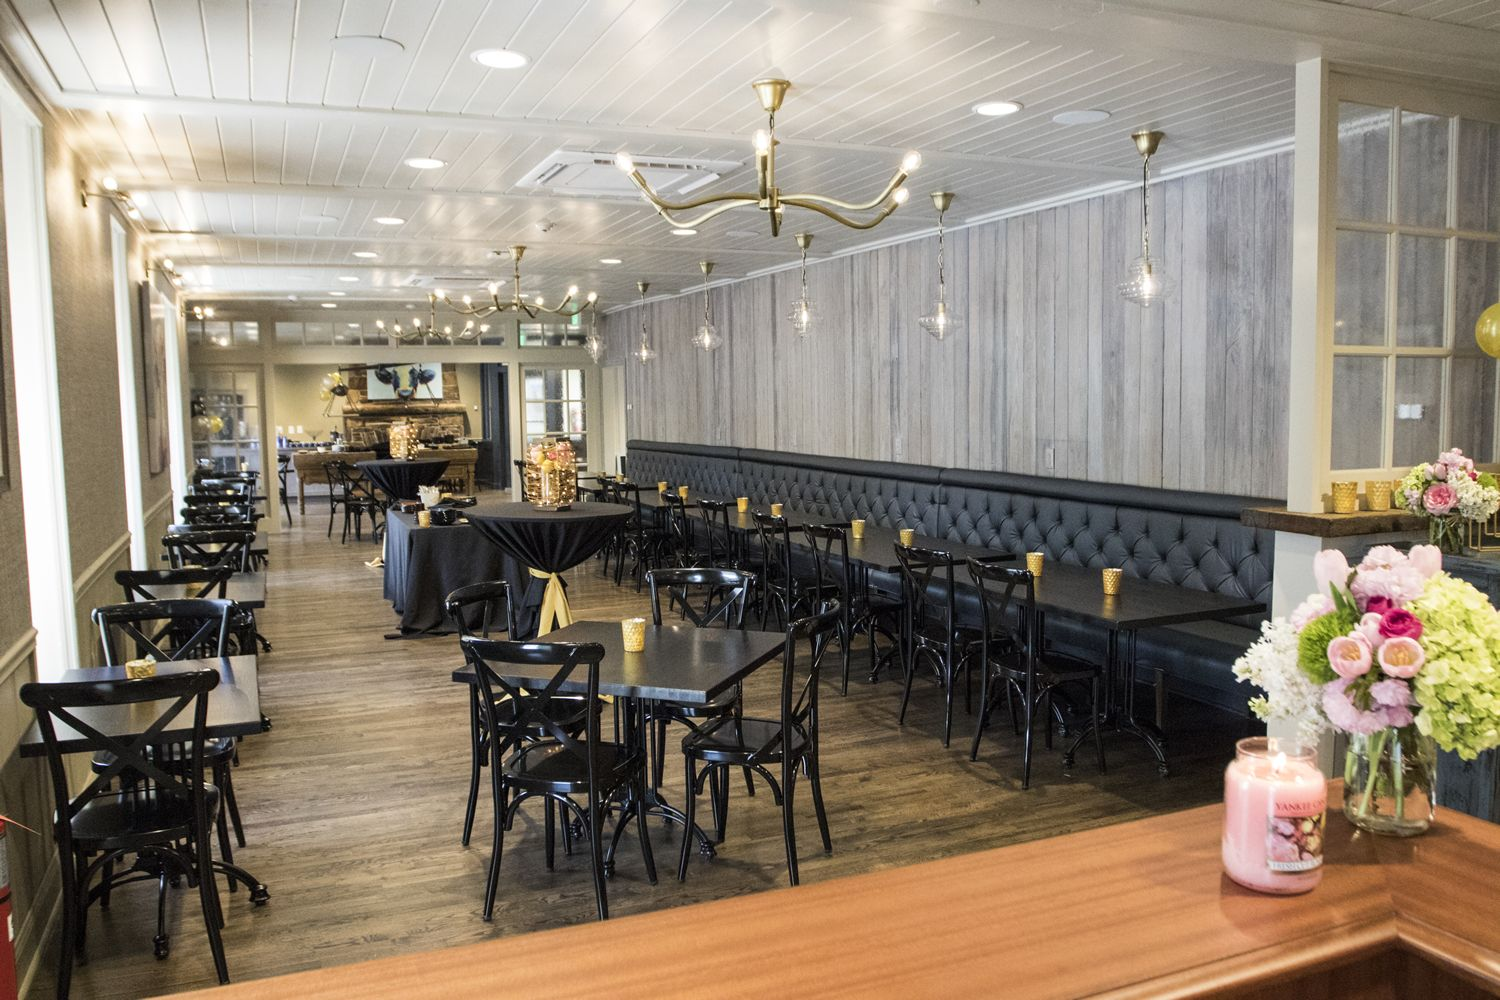 The Country's First Kosher Certified Tavern Opens at Historic Railroad Stop